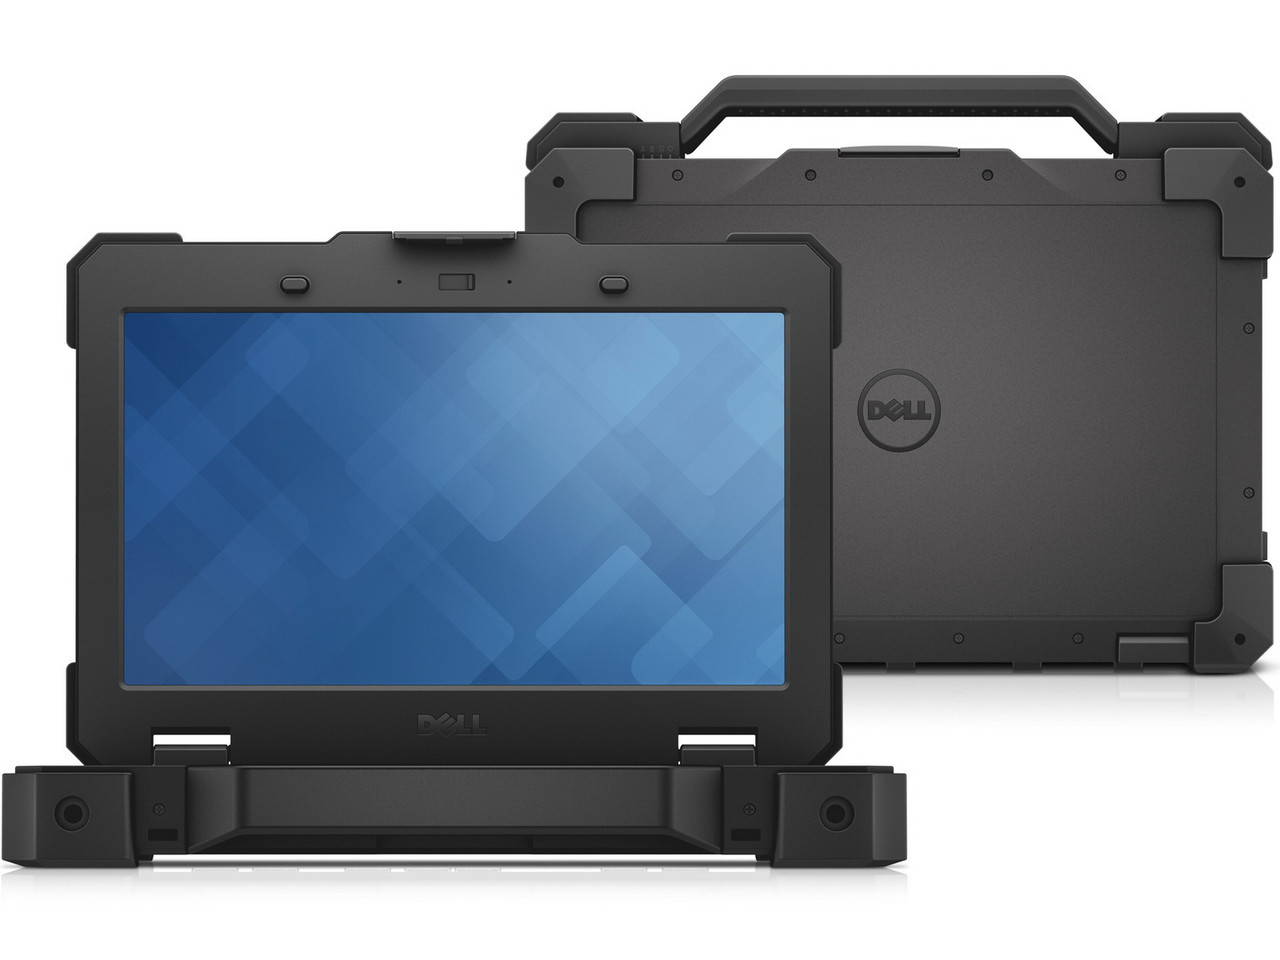 rug latitude extreme manual system front view low us in en s rugged figure support guid om dell owner laptop manuals